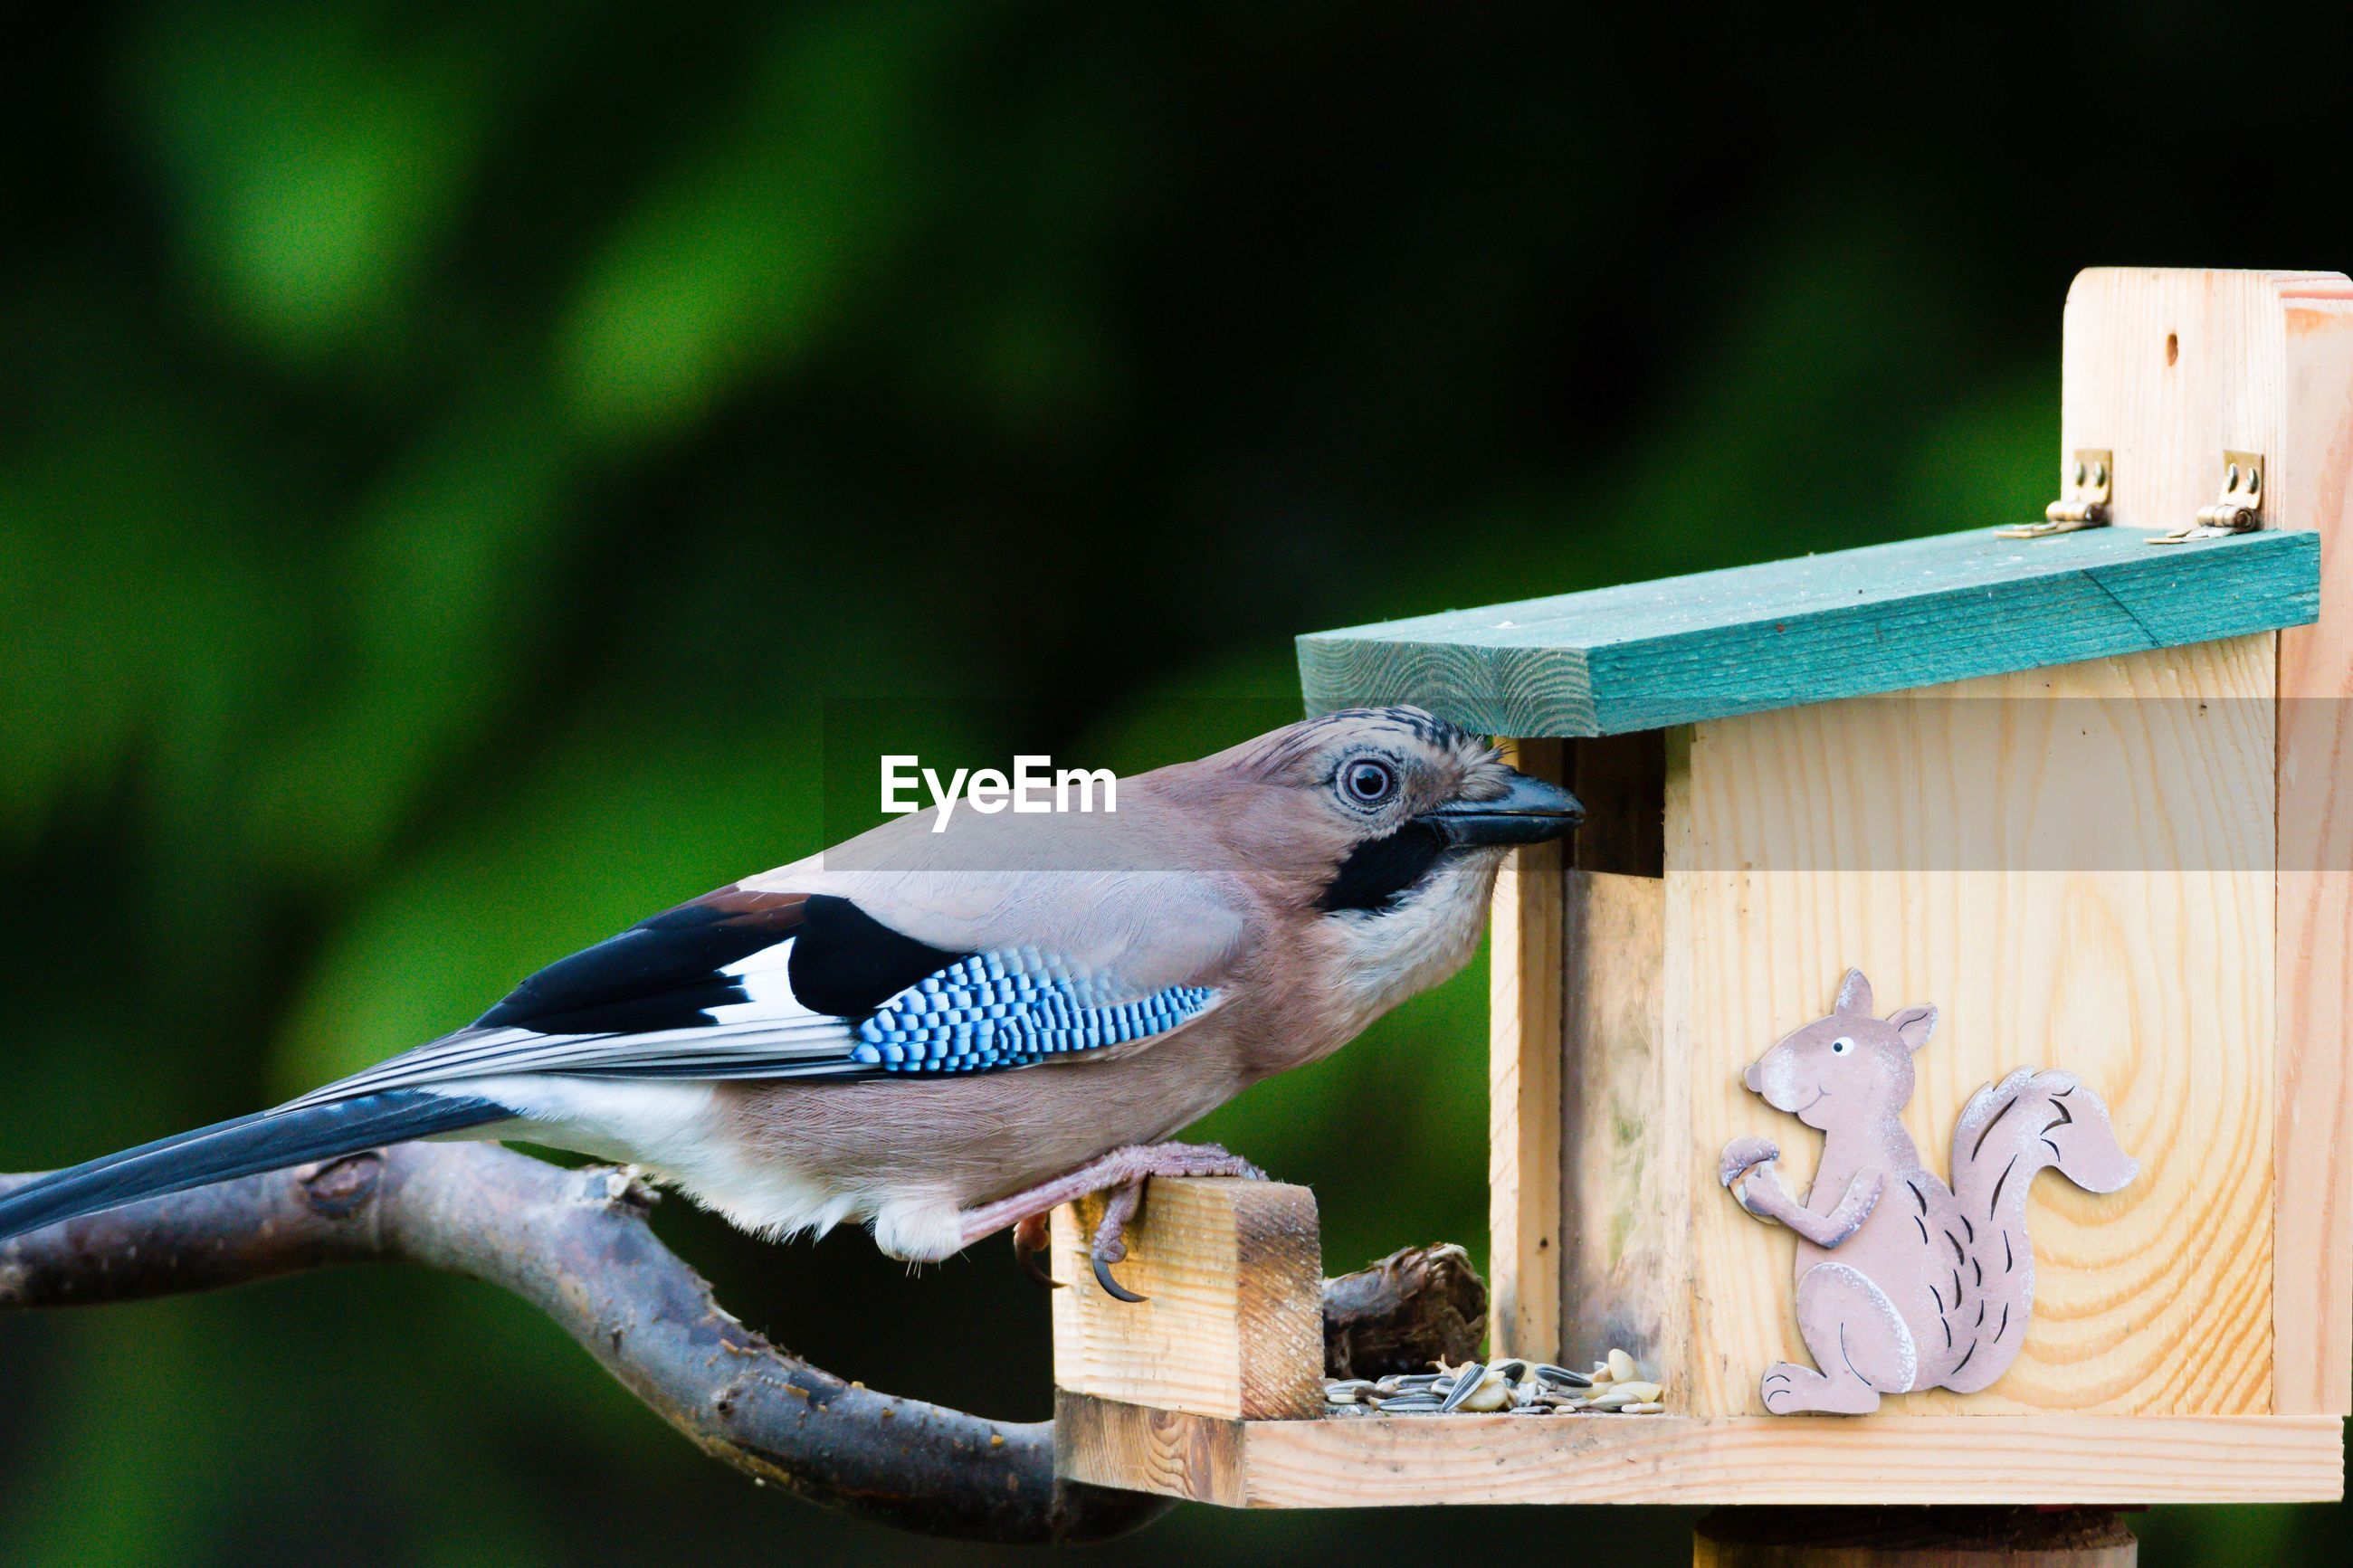 Close-up of eurasian jay perching on birdhouse